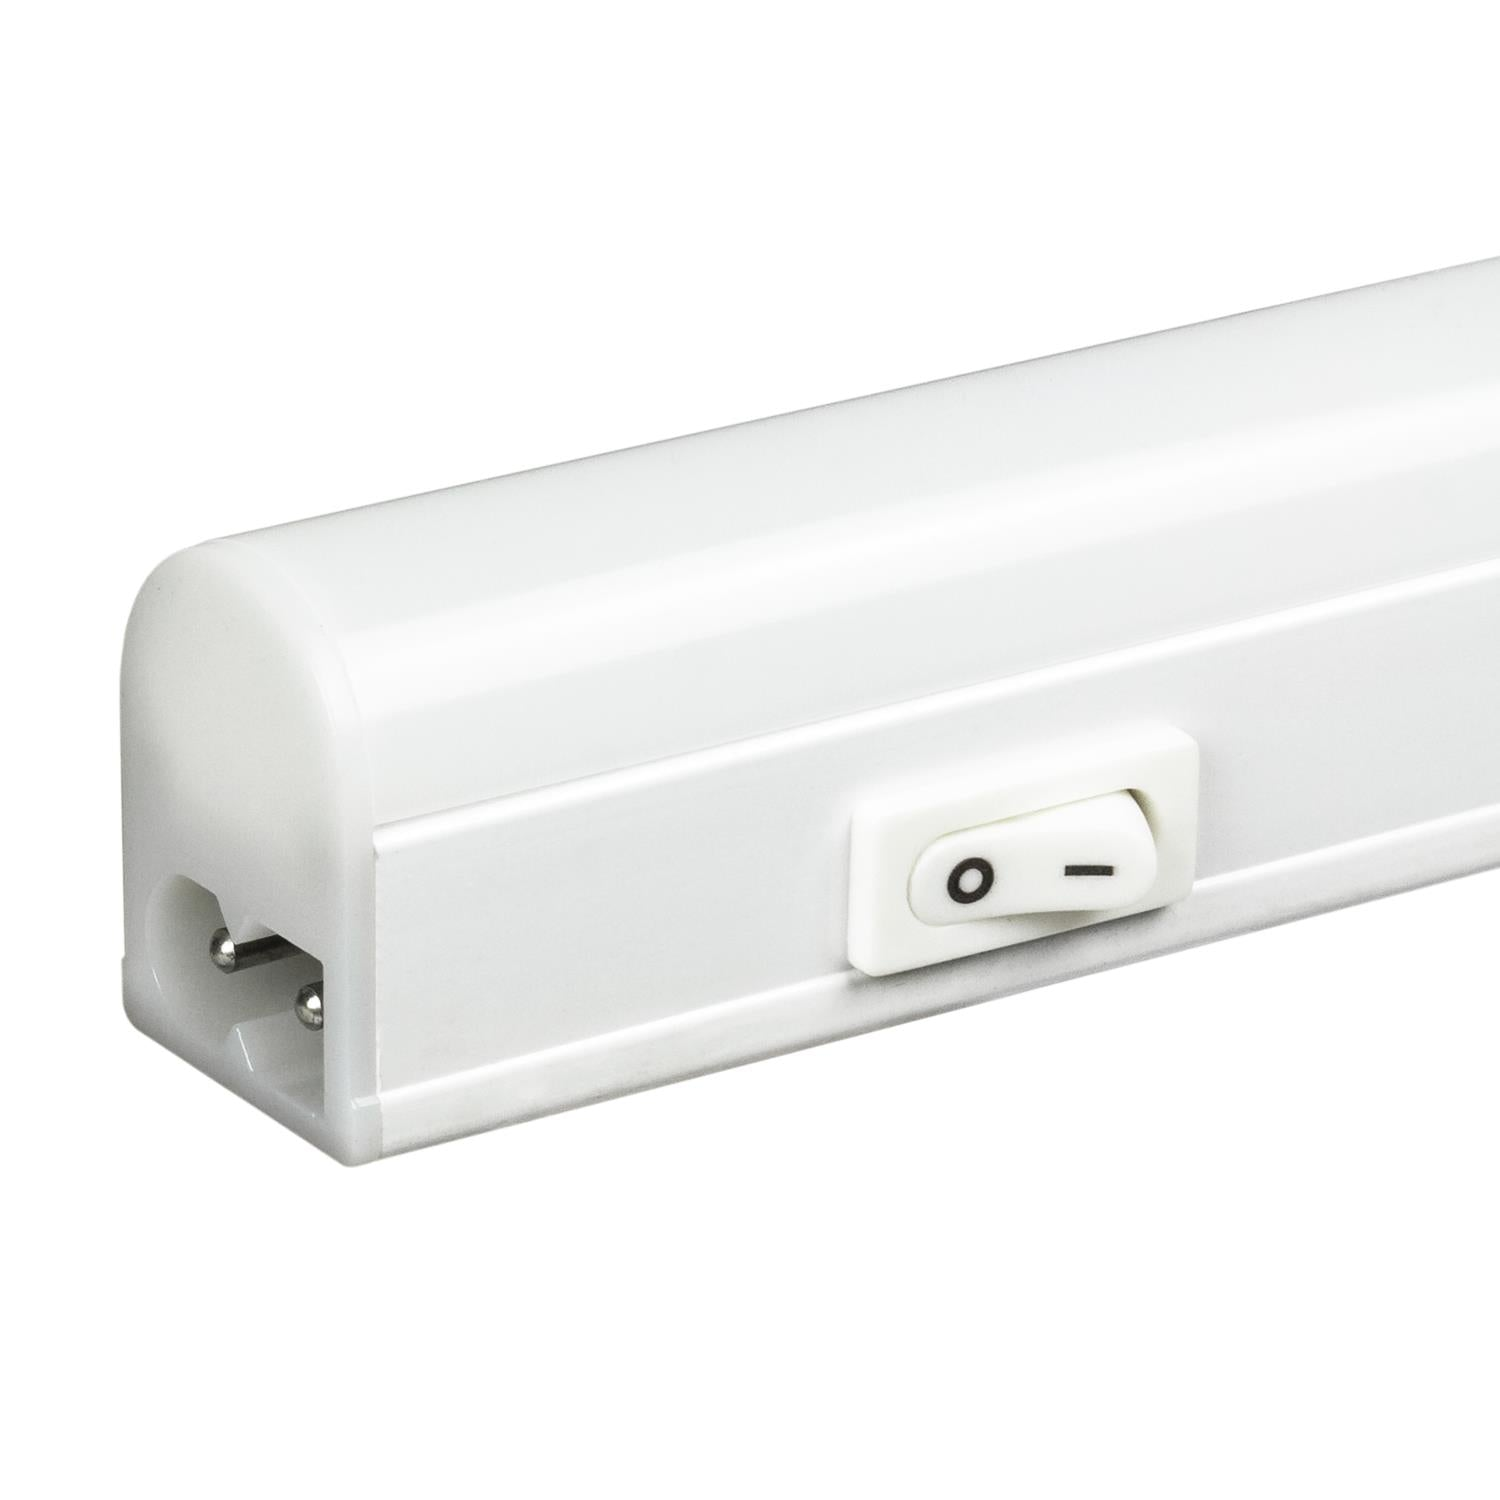 SUNLITE 34in 10w Linkable Under Cabinet Fixture - 3000K